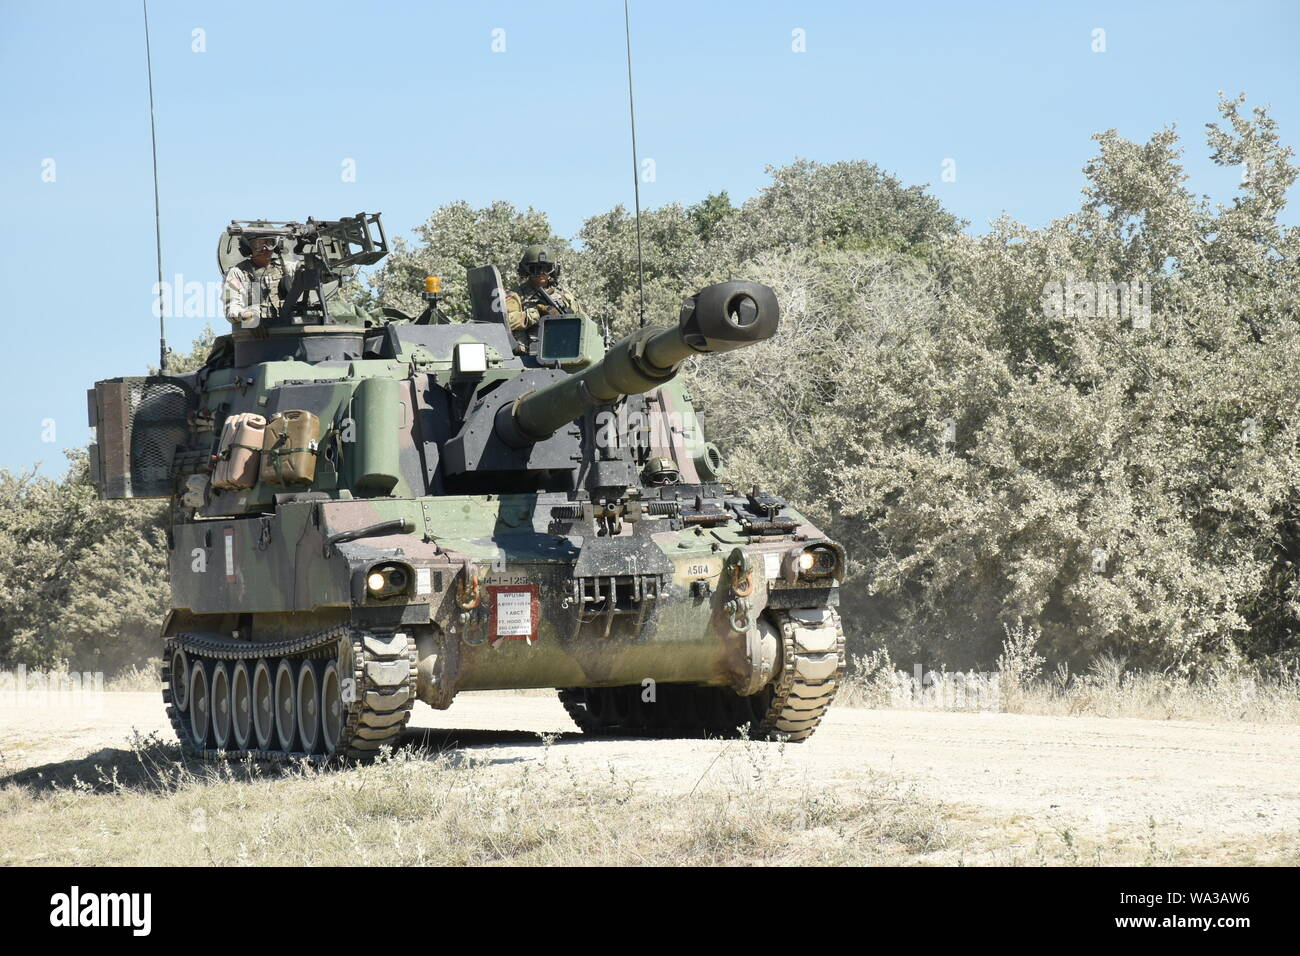 Fort Hood Stock Photos & Fort Hood Stock Images - Alamy